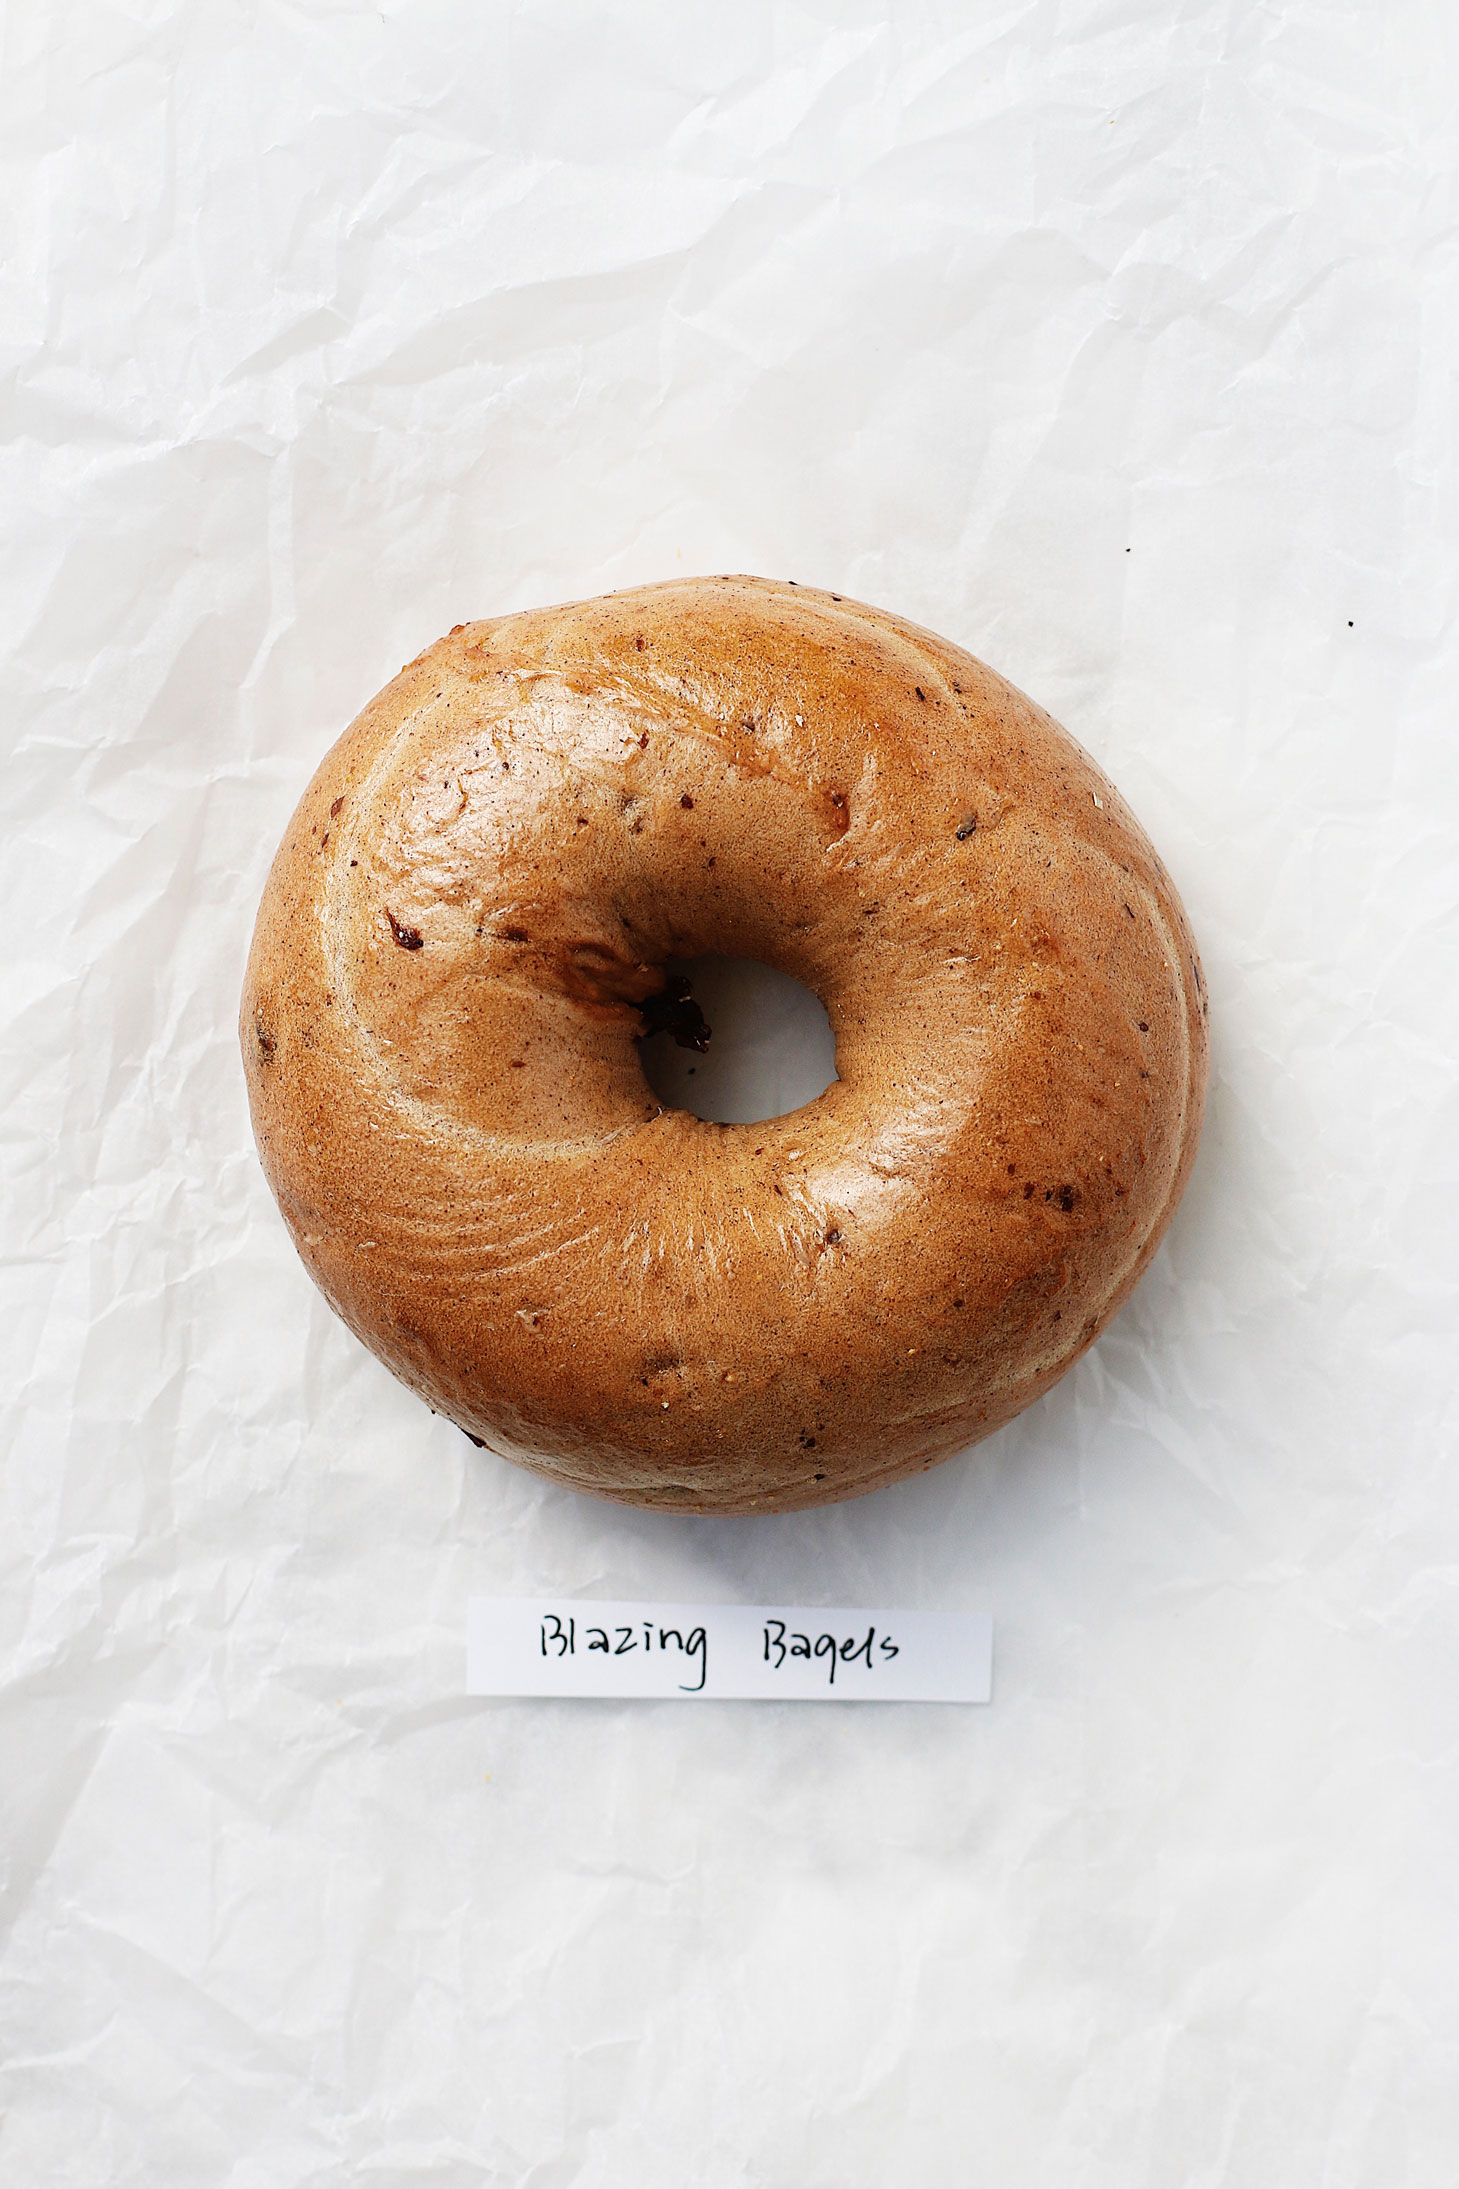 best-bagel-in-seattle-great-bagel-off-blazing-bagel-cinnamon-raisin